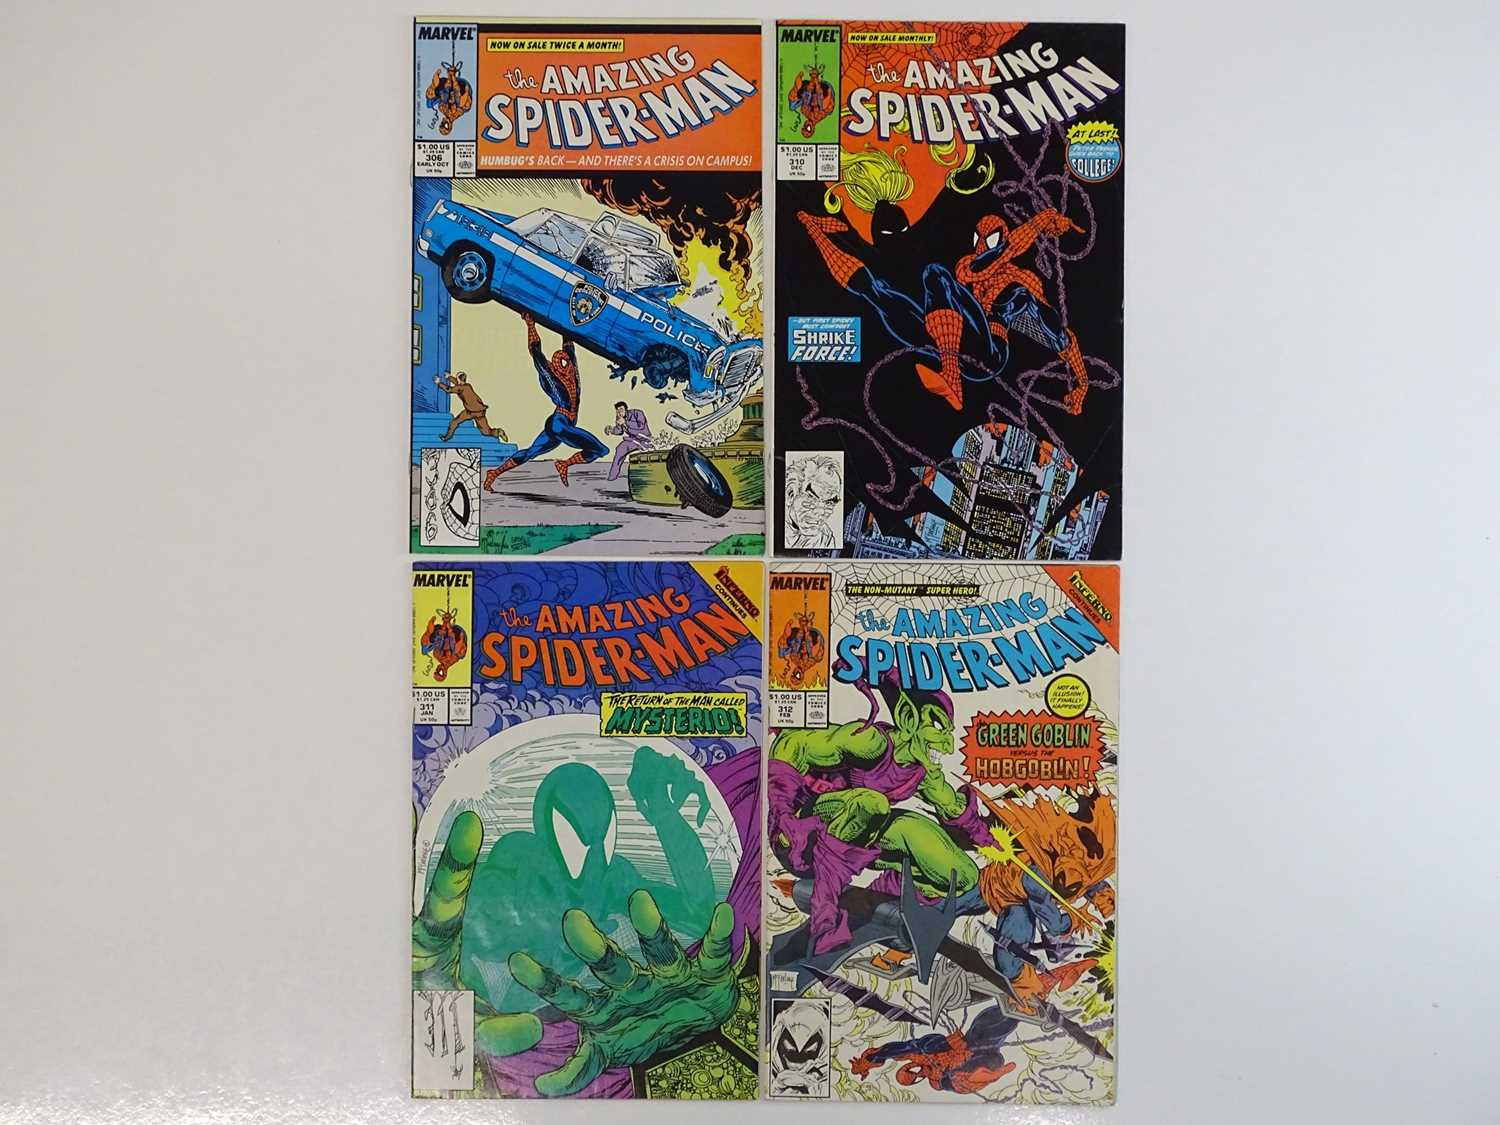 AMAZING SPIDER-MAN #306, 310, 311, 312 - (4 in Lot) - (1988 - MARVEL) - Includes Action Comics #1